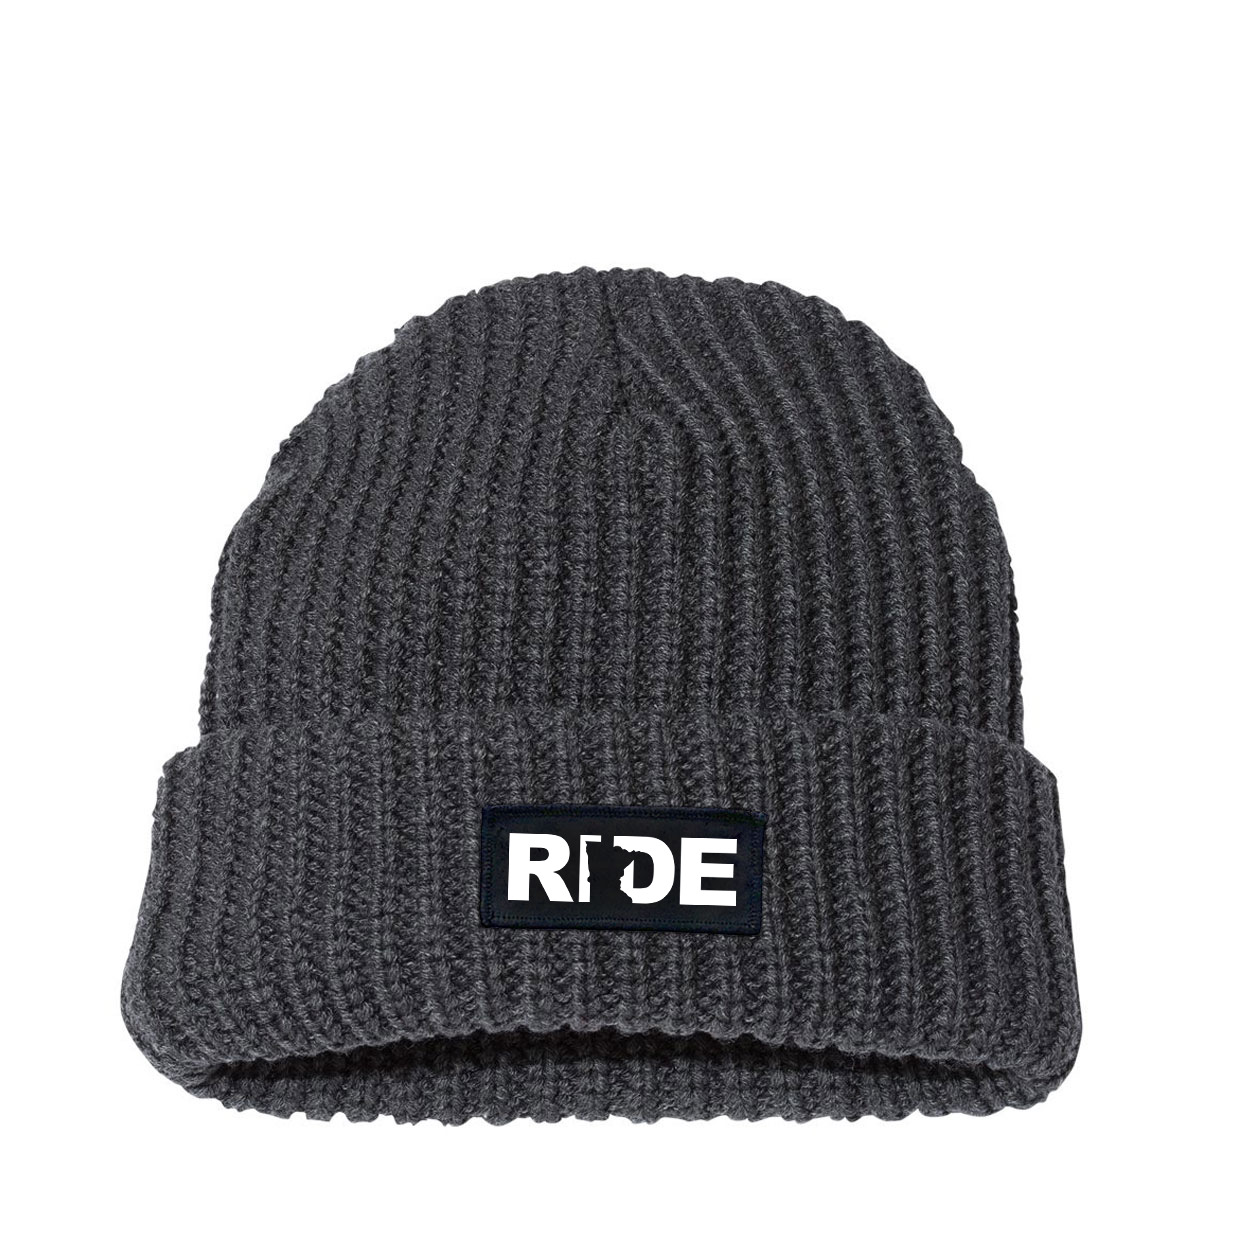 Ride Minnesota Night Out Woven Patch Roll Up Jumbo Chunky Knit Beanie Charcoal (White Logo)